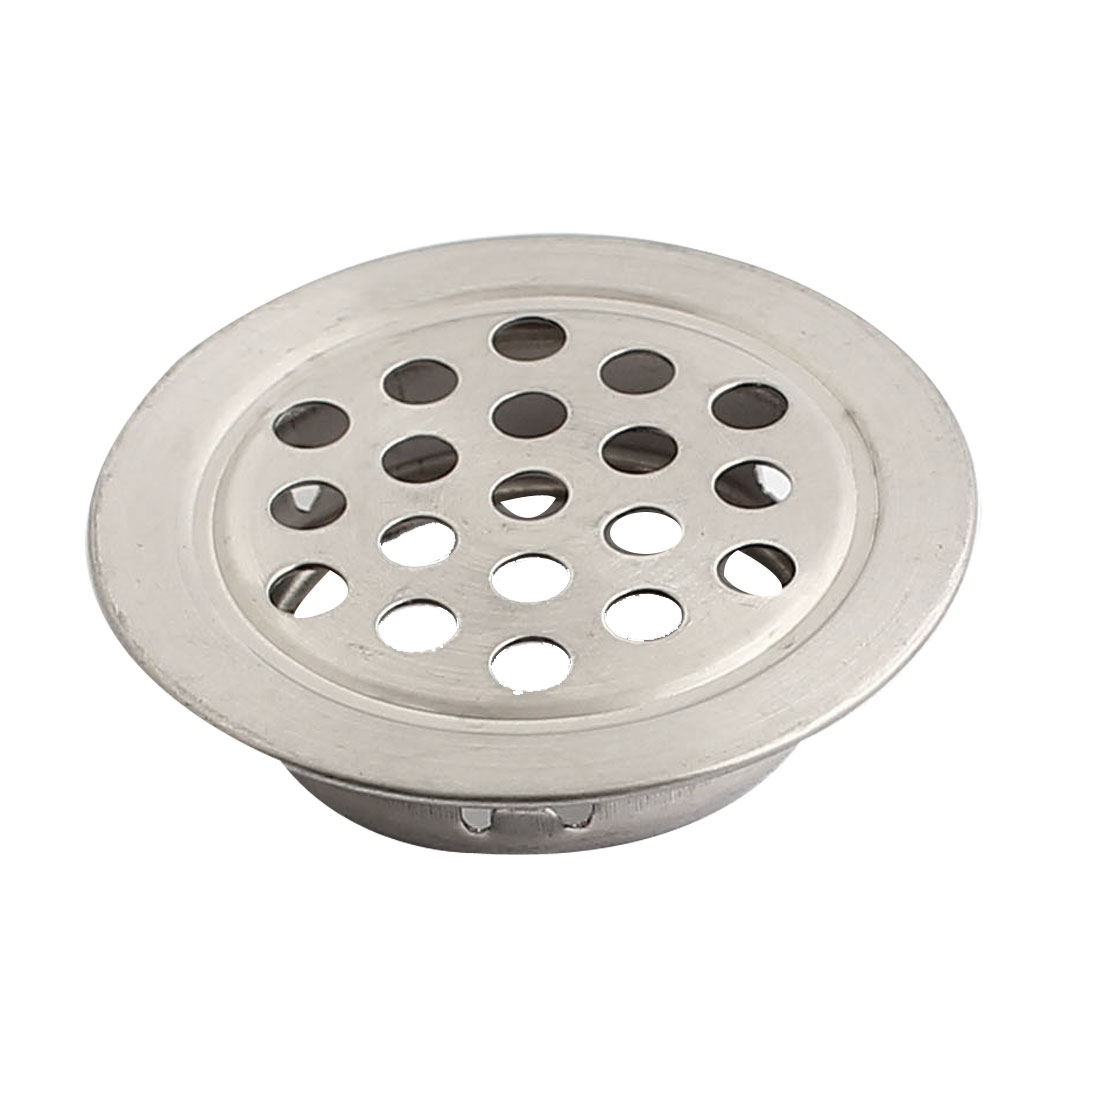 Perforated Flat Round Mesh Air Vent Ventilation Louvers 25mm Bottom Dia